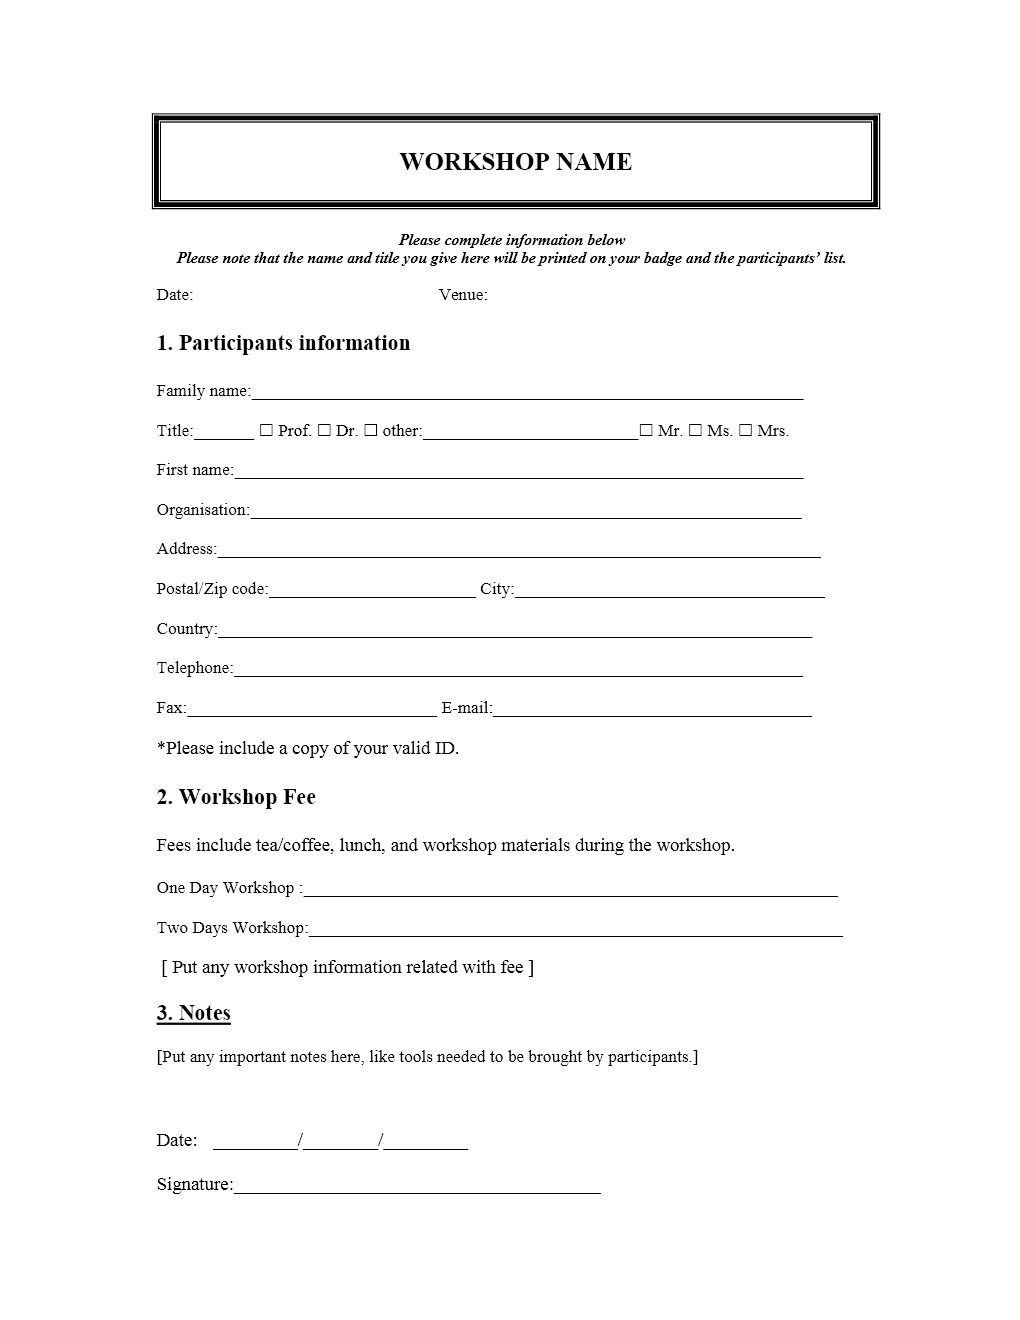 Workshop Registration Form | Freewordtemplates.net